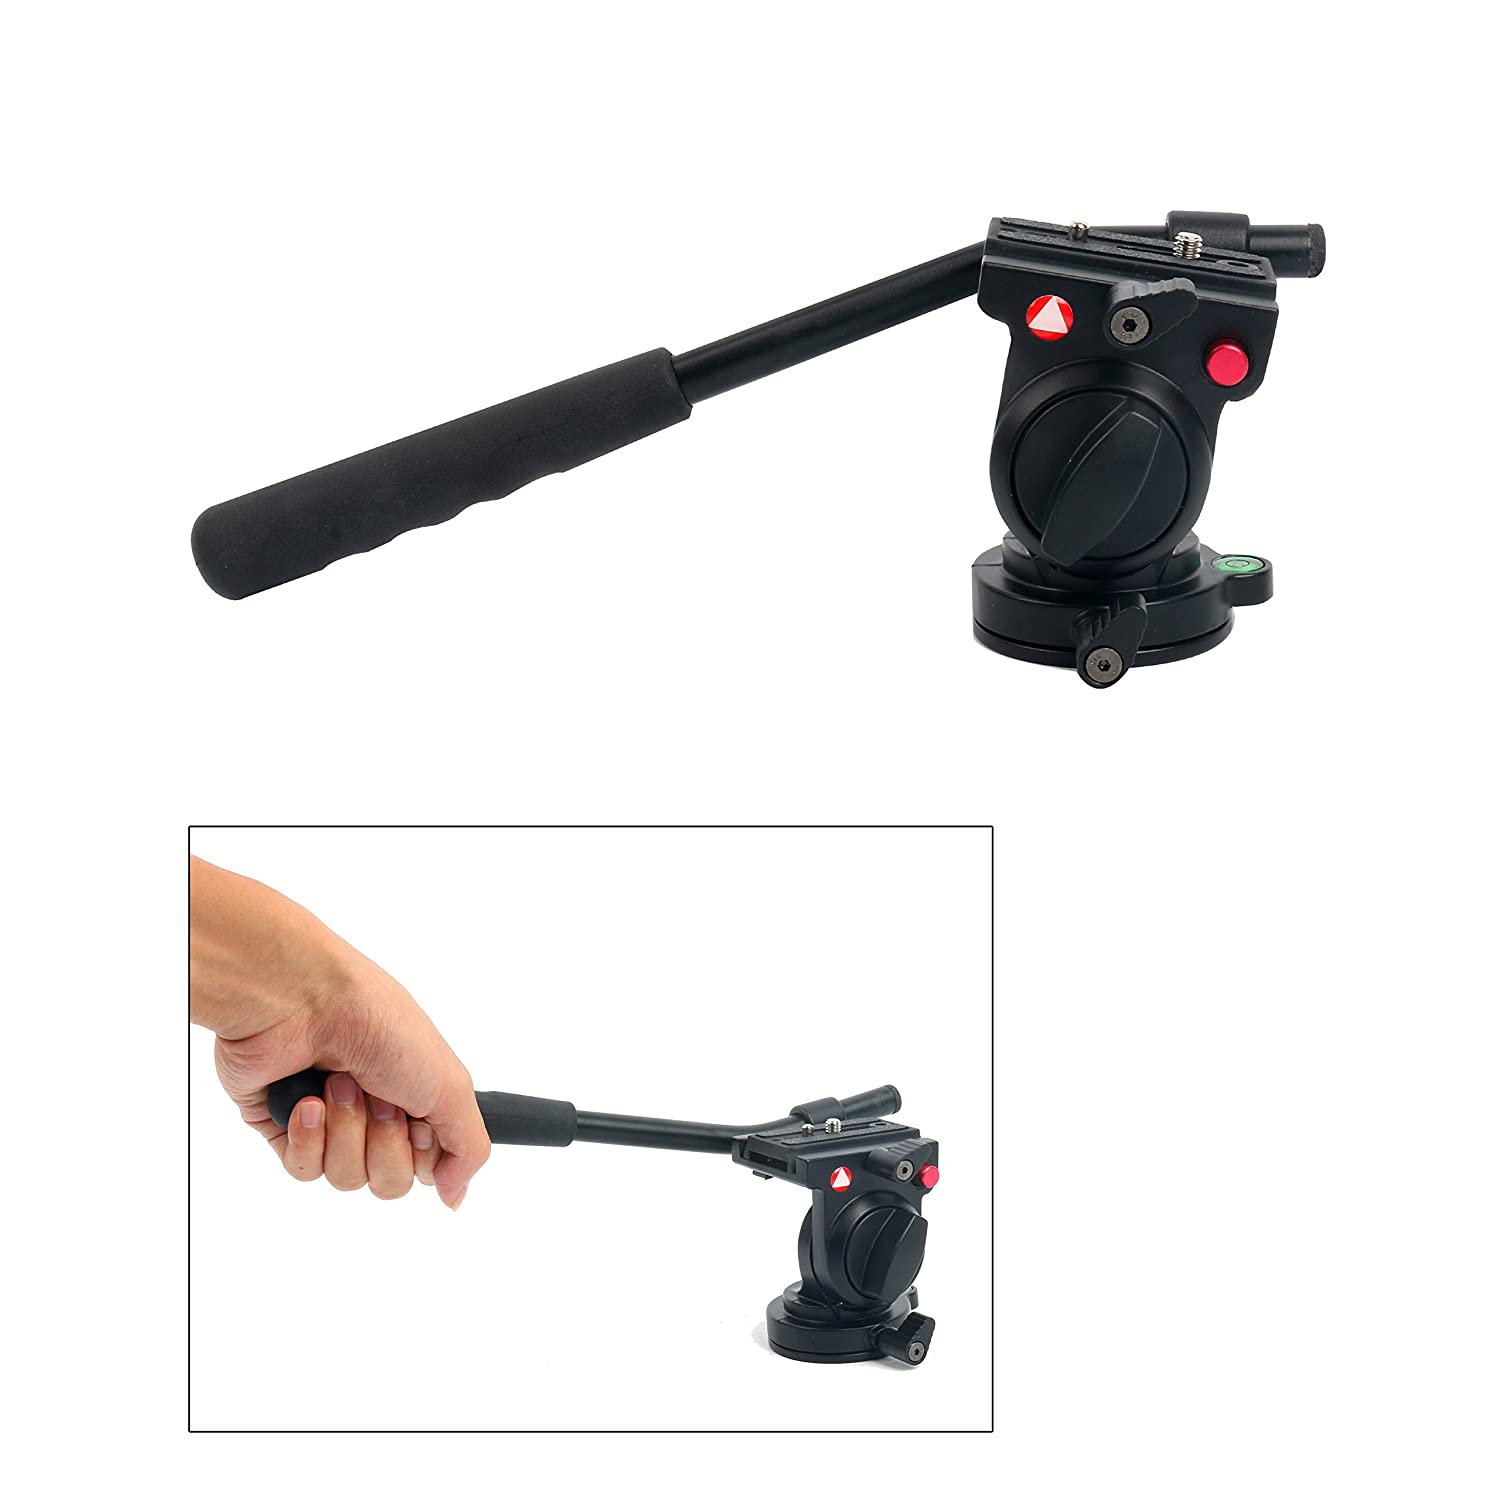 """KINGJOY KH-6750 Flexible Aluminum Camera Tripod Head Fluid Video Tripod Head for Canon, Nikon,Tripods and Monopods and Other DSLR Cameras with 1/4"""",3/8"""" Thread"""